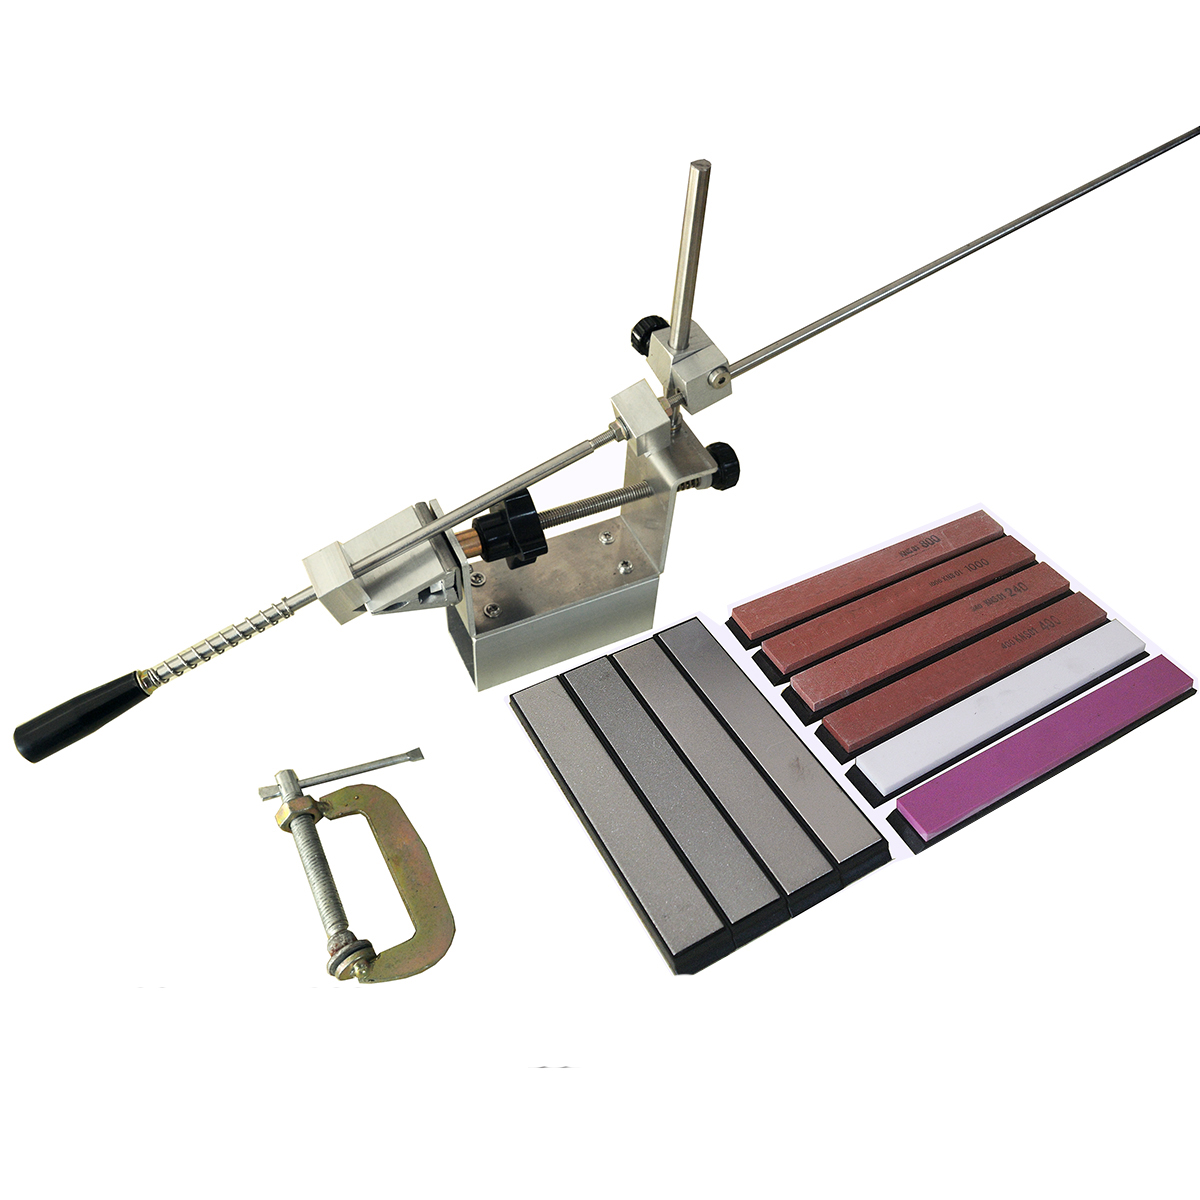 Pro Aluminum Alloy Steel Professional Knife Sharpener Tool Sharpening Machine Kitchen Accessories Grinding Device Bar Diamond